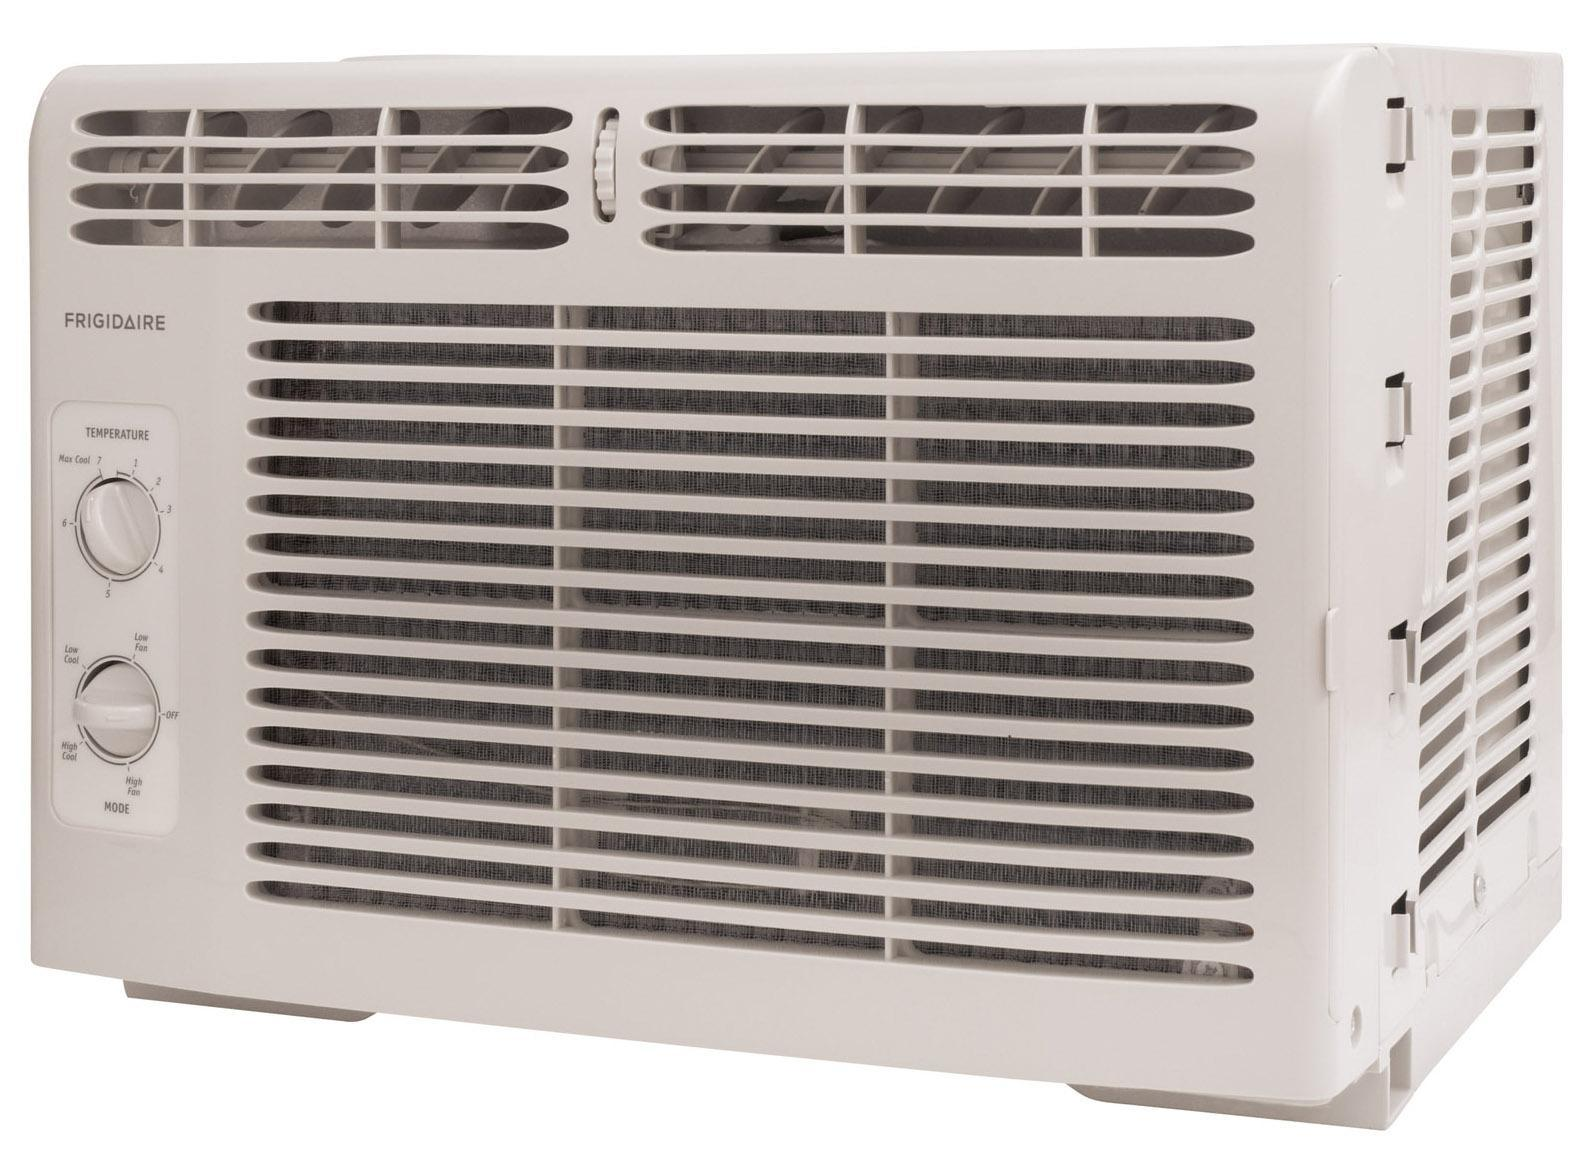 #726159 FRA052XT7 Frigidaire Fra052xt7 Window/Wall Air  Brand New 11951 Frigidaire Central Air Conditioner images with 1586x1152 px on helpvideos.info - Air Conditioners, Air Coolers and more